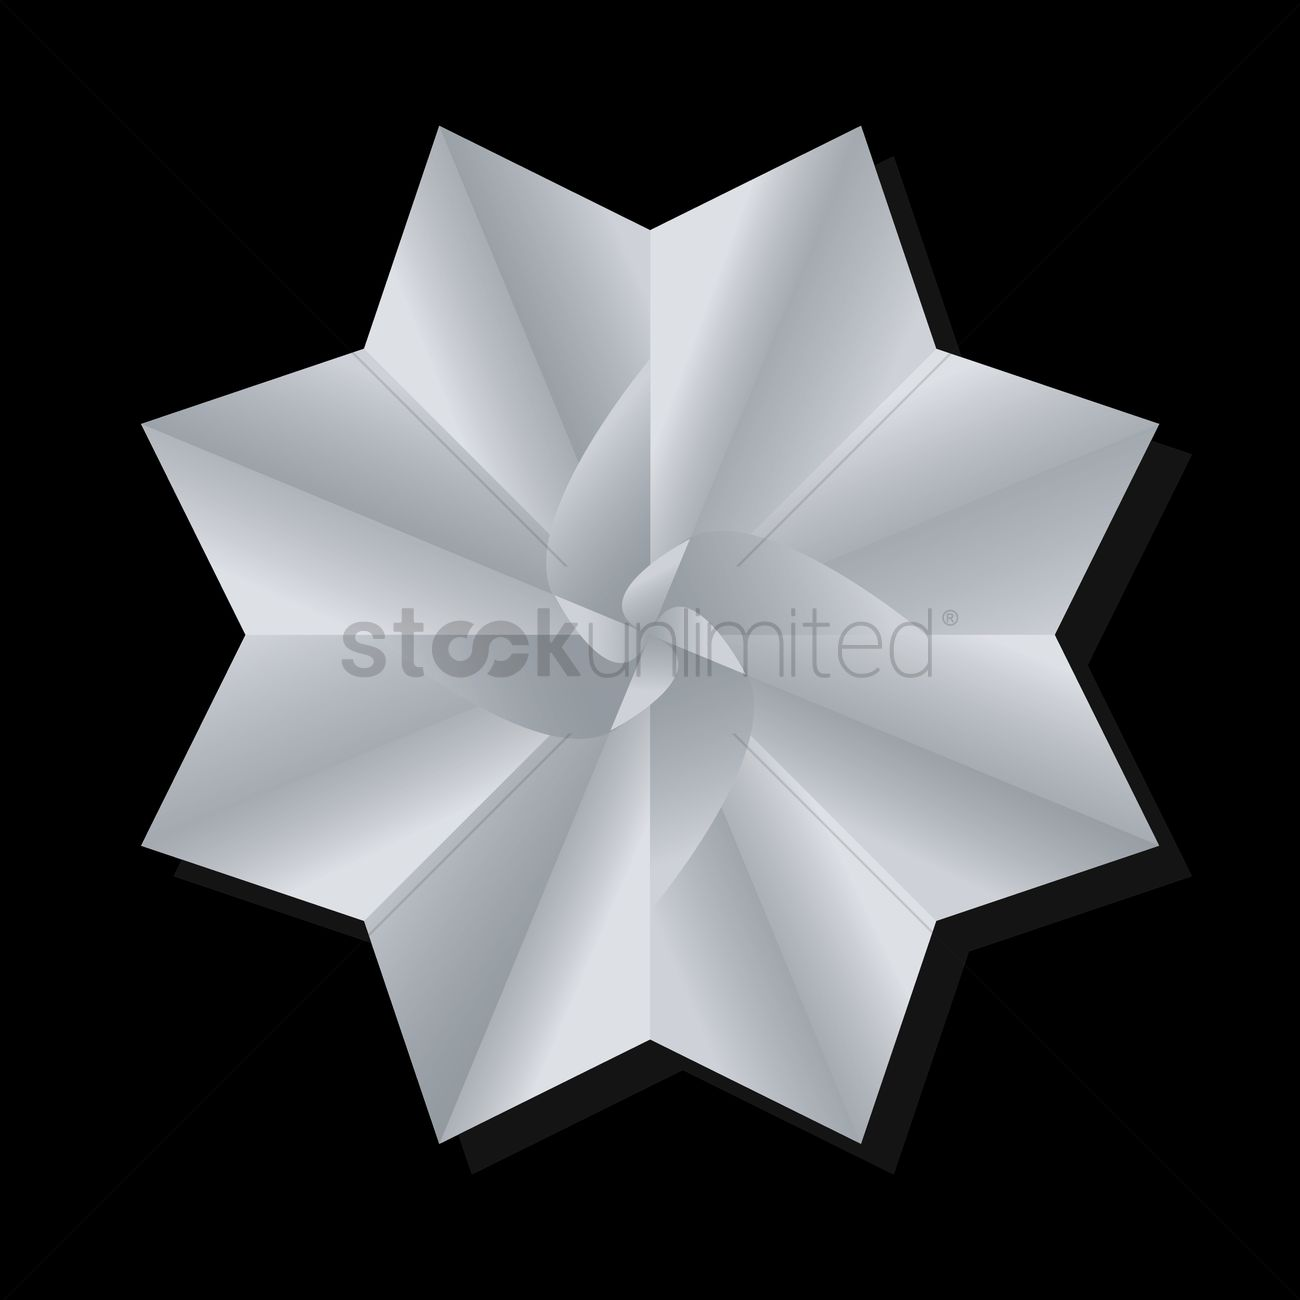 Origami Flower Vector Image 1439764 Stockunlimited